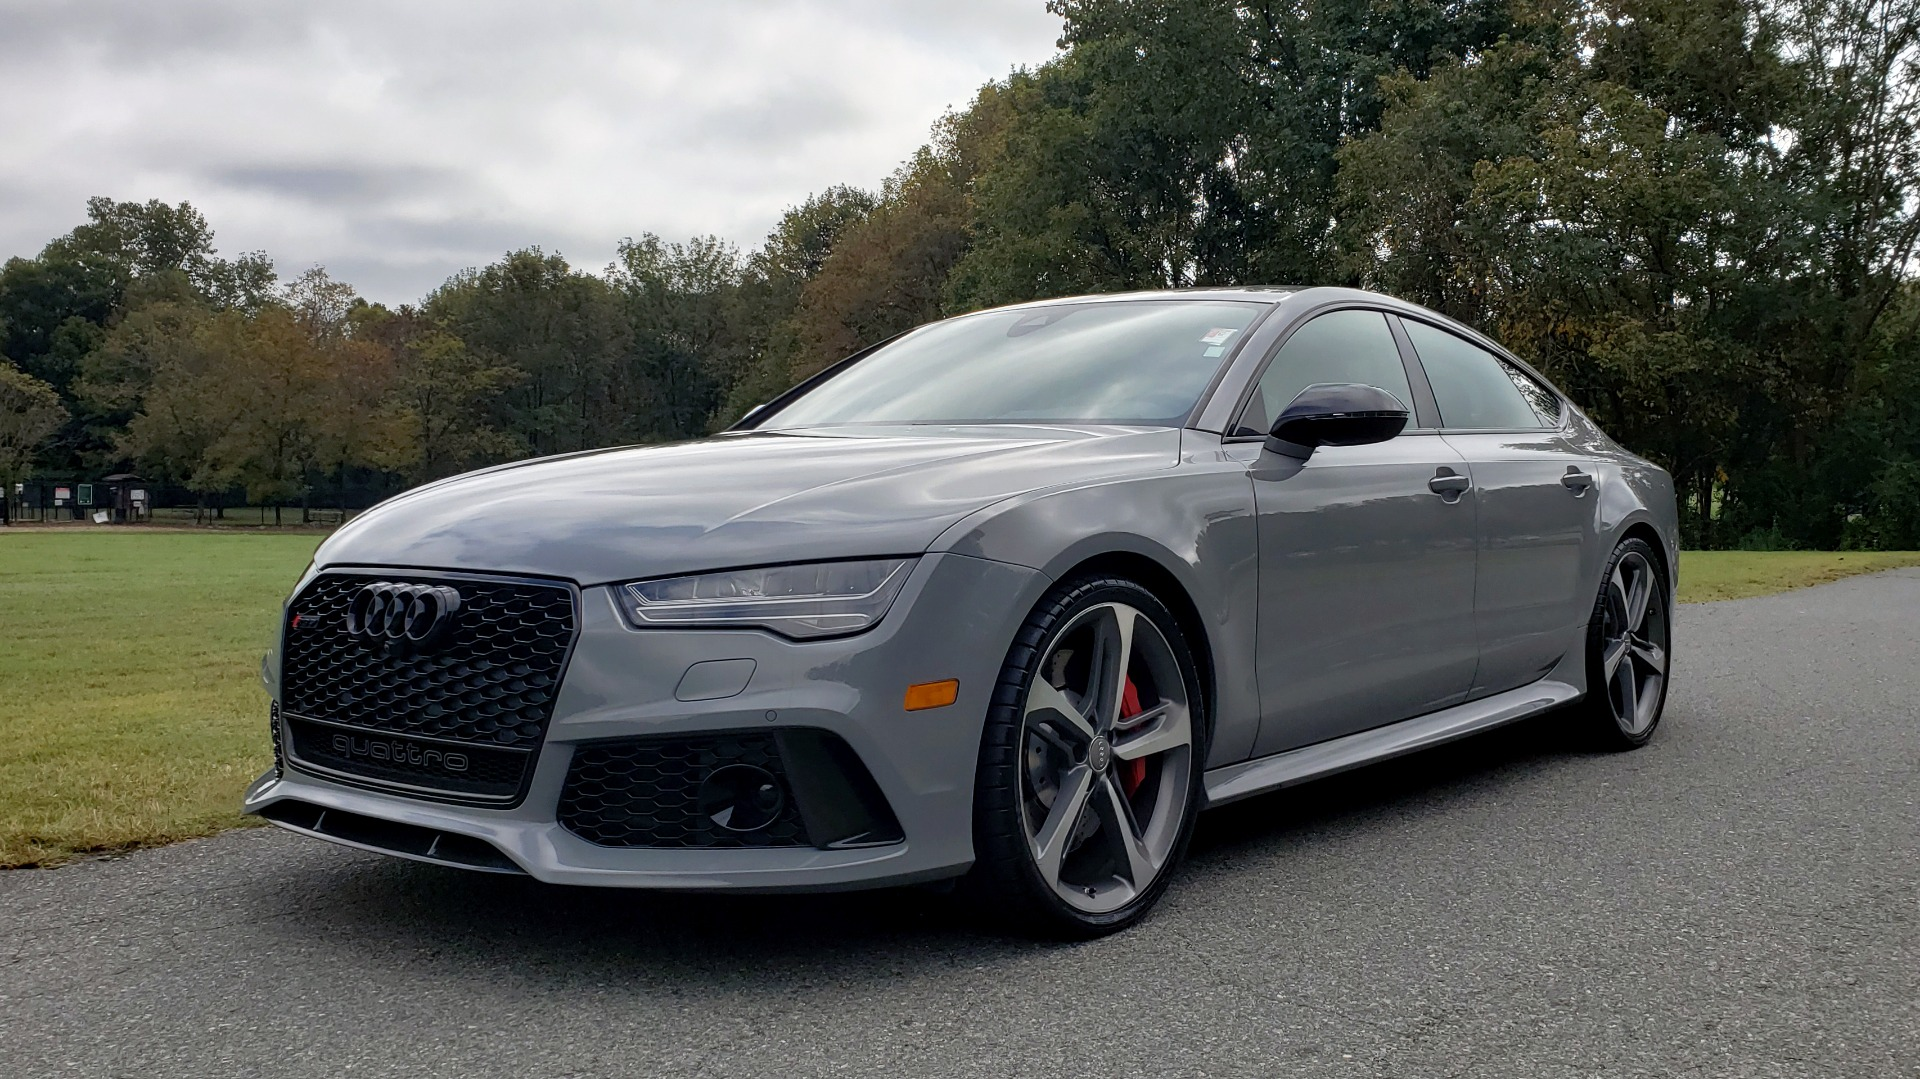 Used 2018 Audi RS 7 4.0T TIPTRONIC / CARBON OPTIC / DRVR ASST / NAV / REARVIEW / 750HP+ for sale Sold at Formula Imports in Charlotte NC 28227 6